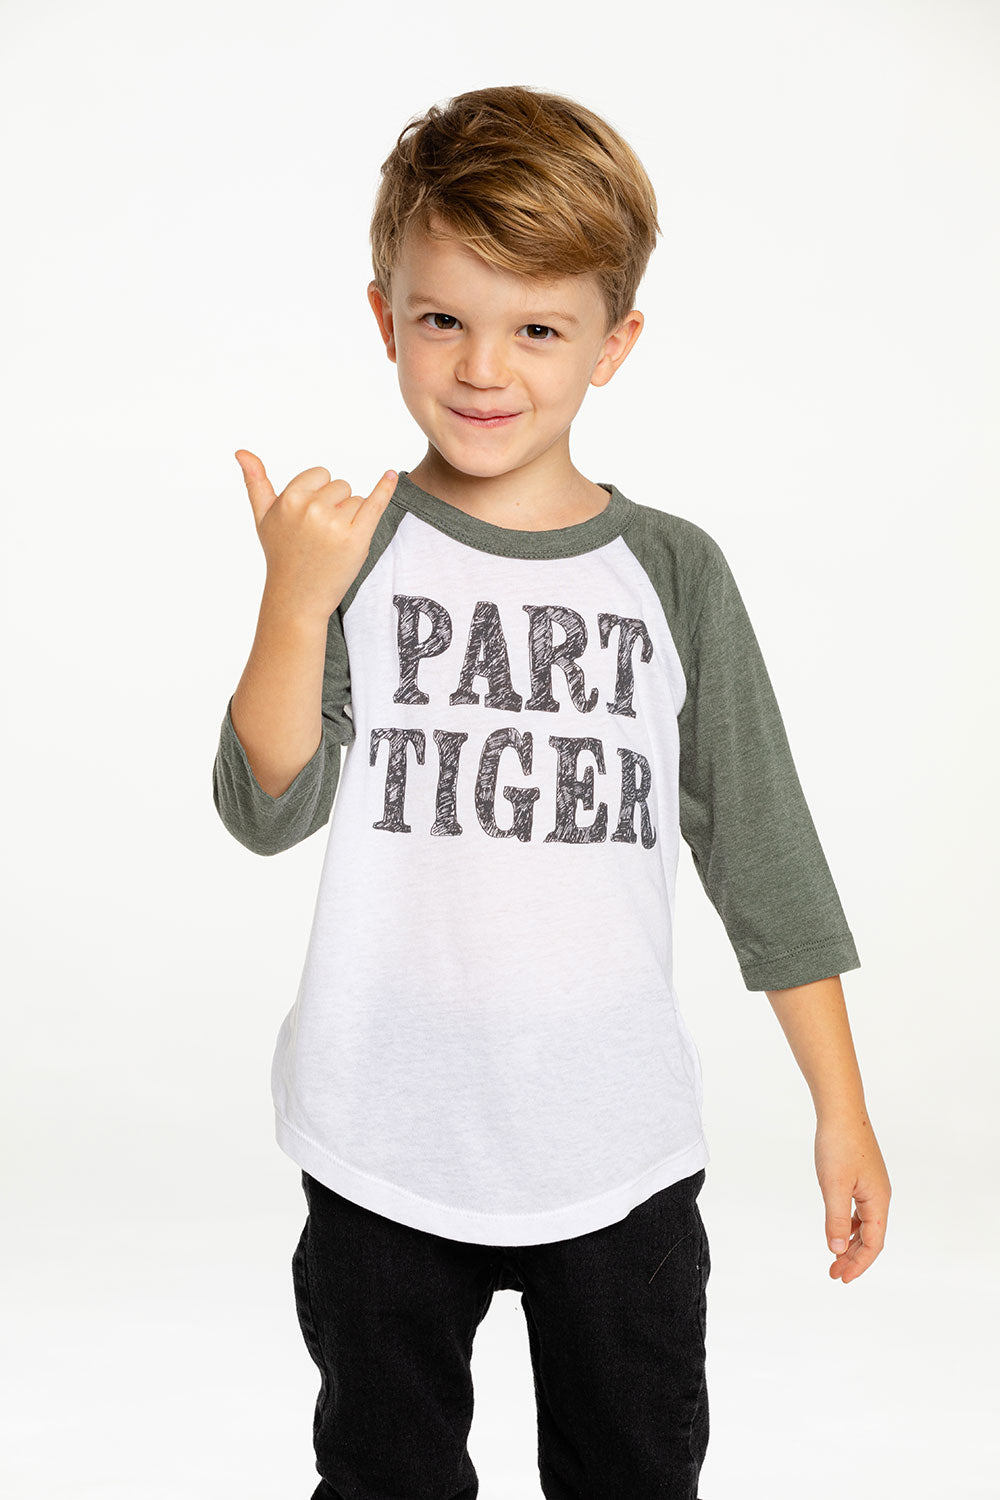 Part Tiger BOYS - chaserbrand